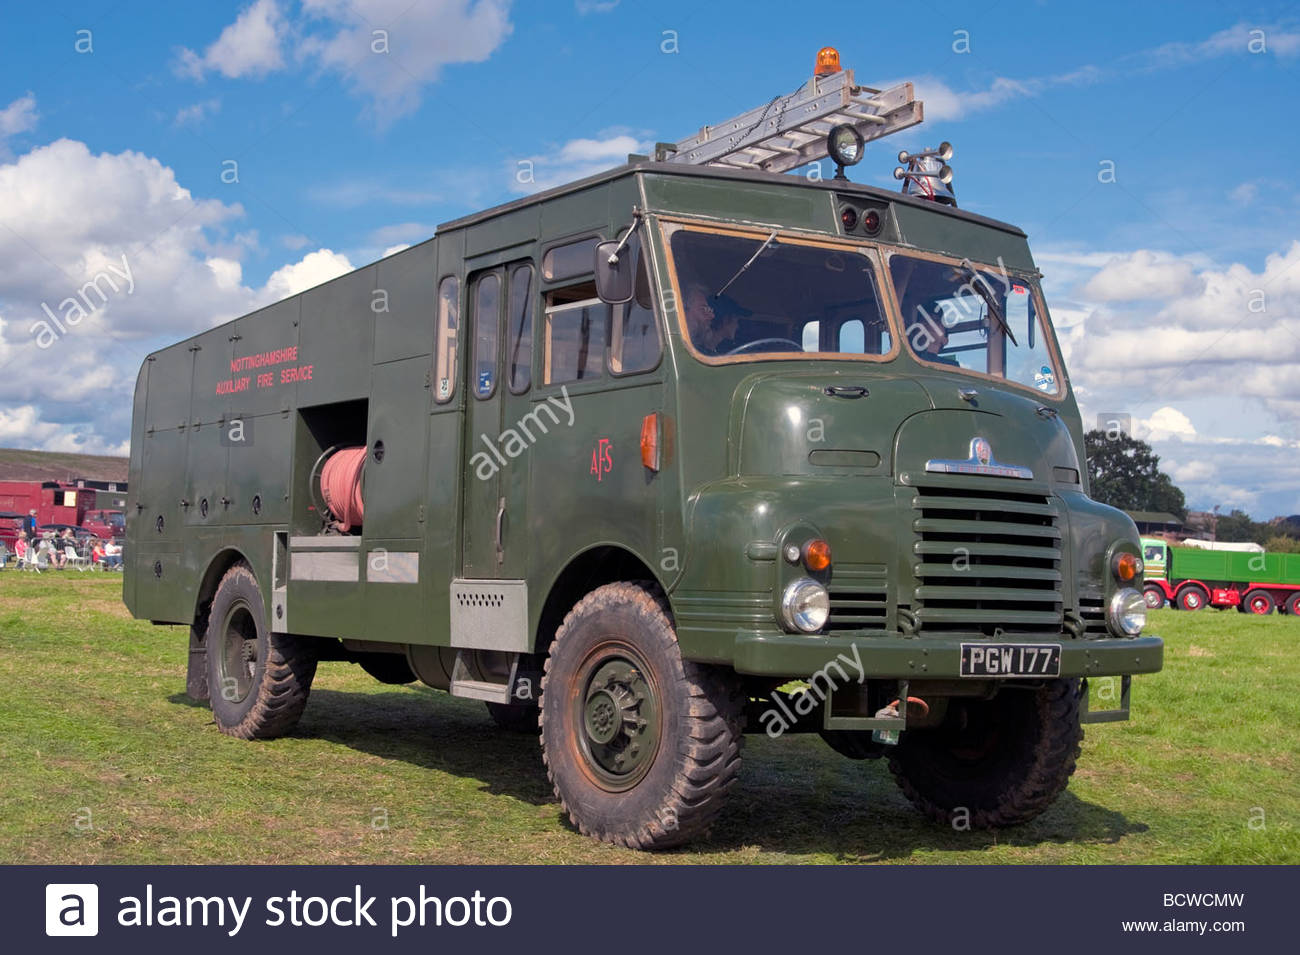 Commercial vehicles at Welland Steam Rally & Show, Worcestershire, UK. Vintage lorry. Bedford green goddess - Stock Image